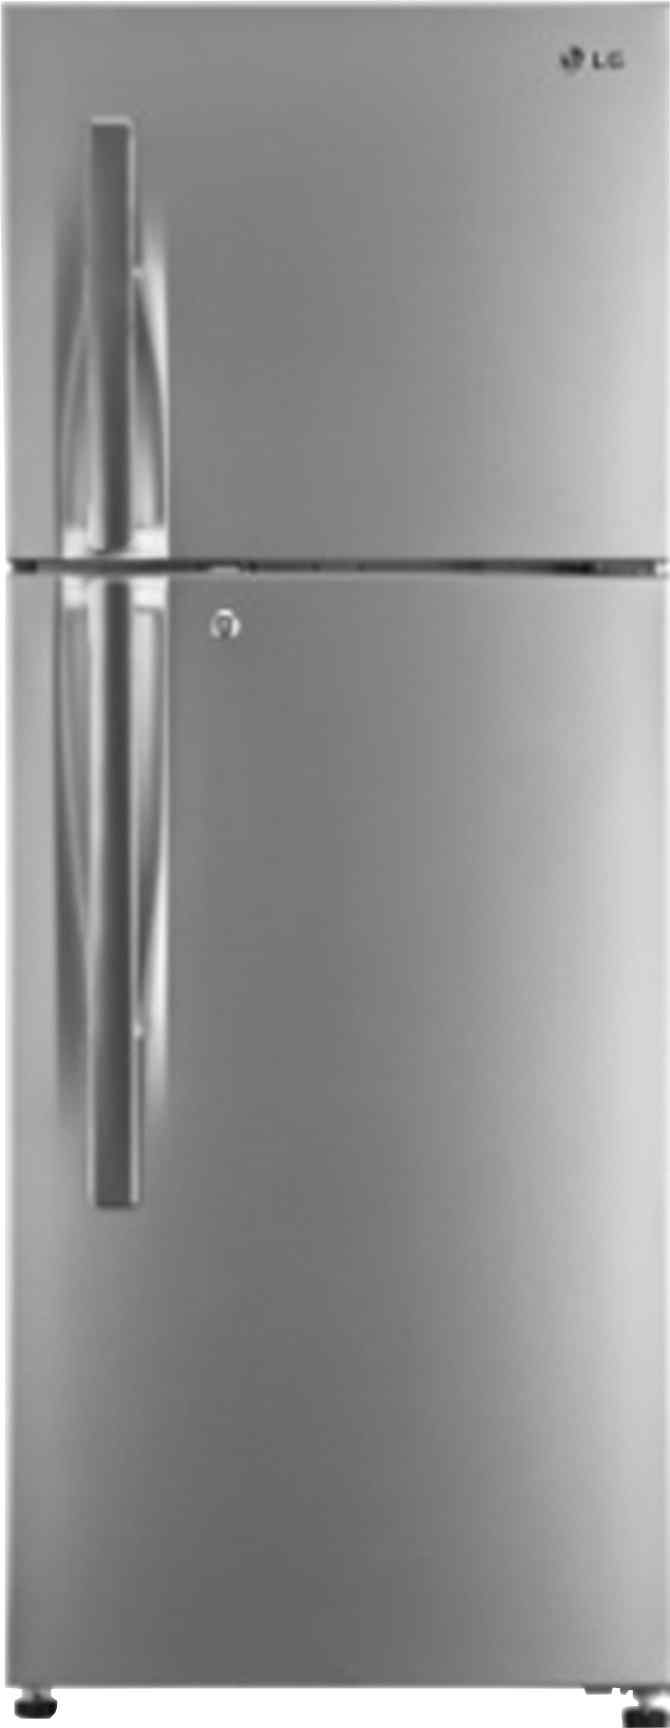 Best price on LG GL-T322RPZM 308 Litre Double Door Refrigerator in India